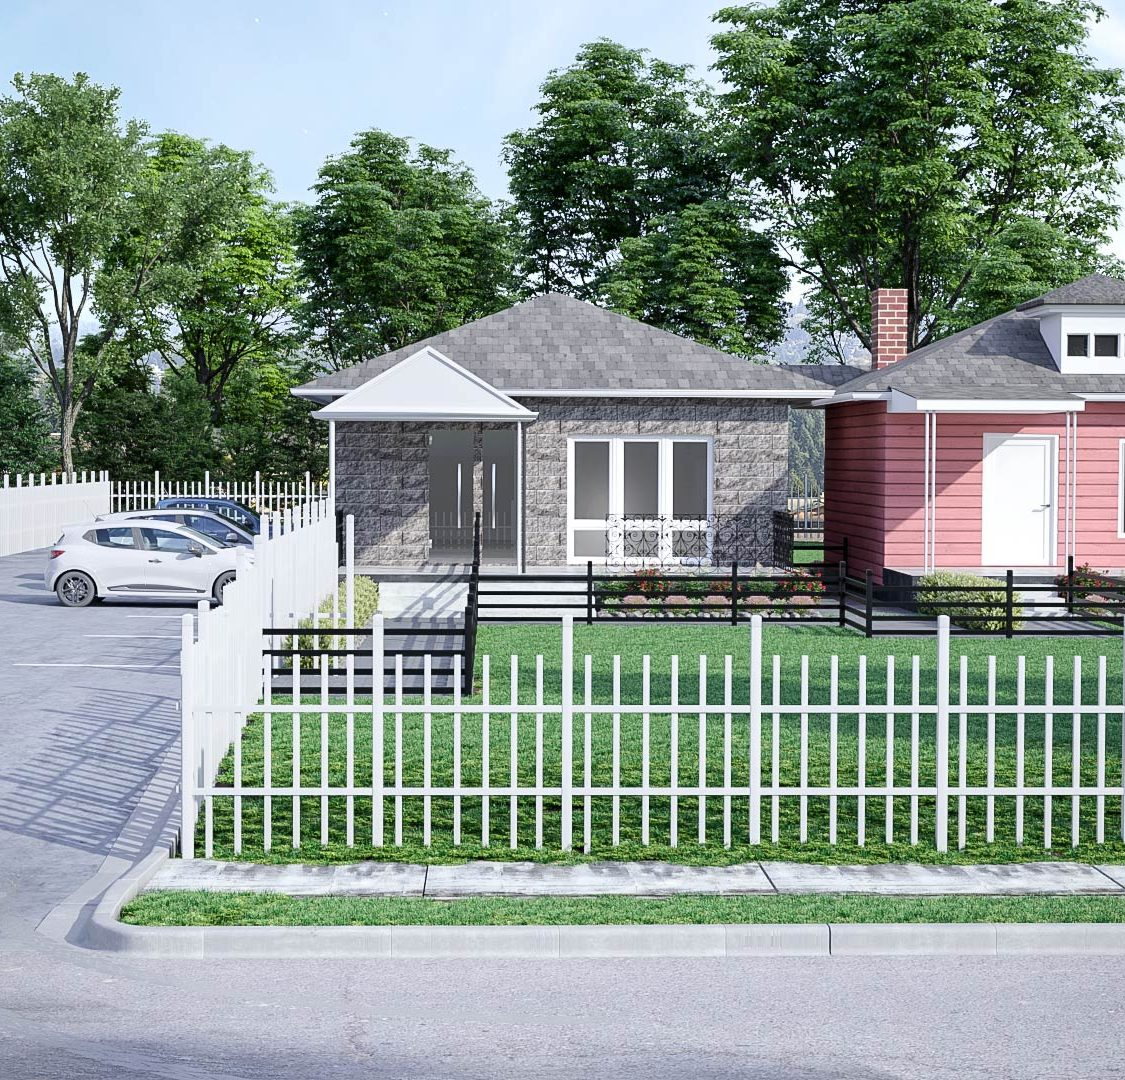 Architectural rendering and Architectural visualization